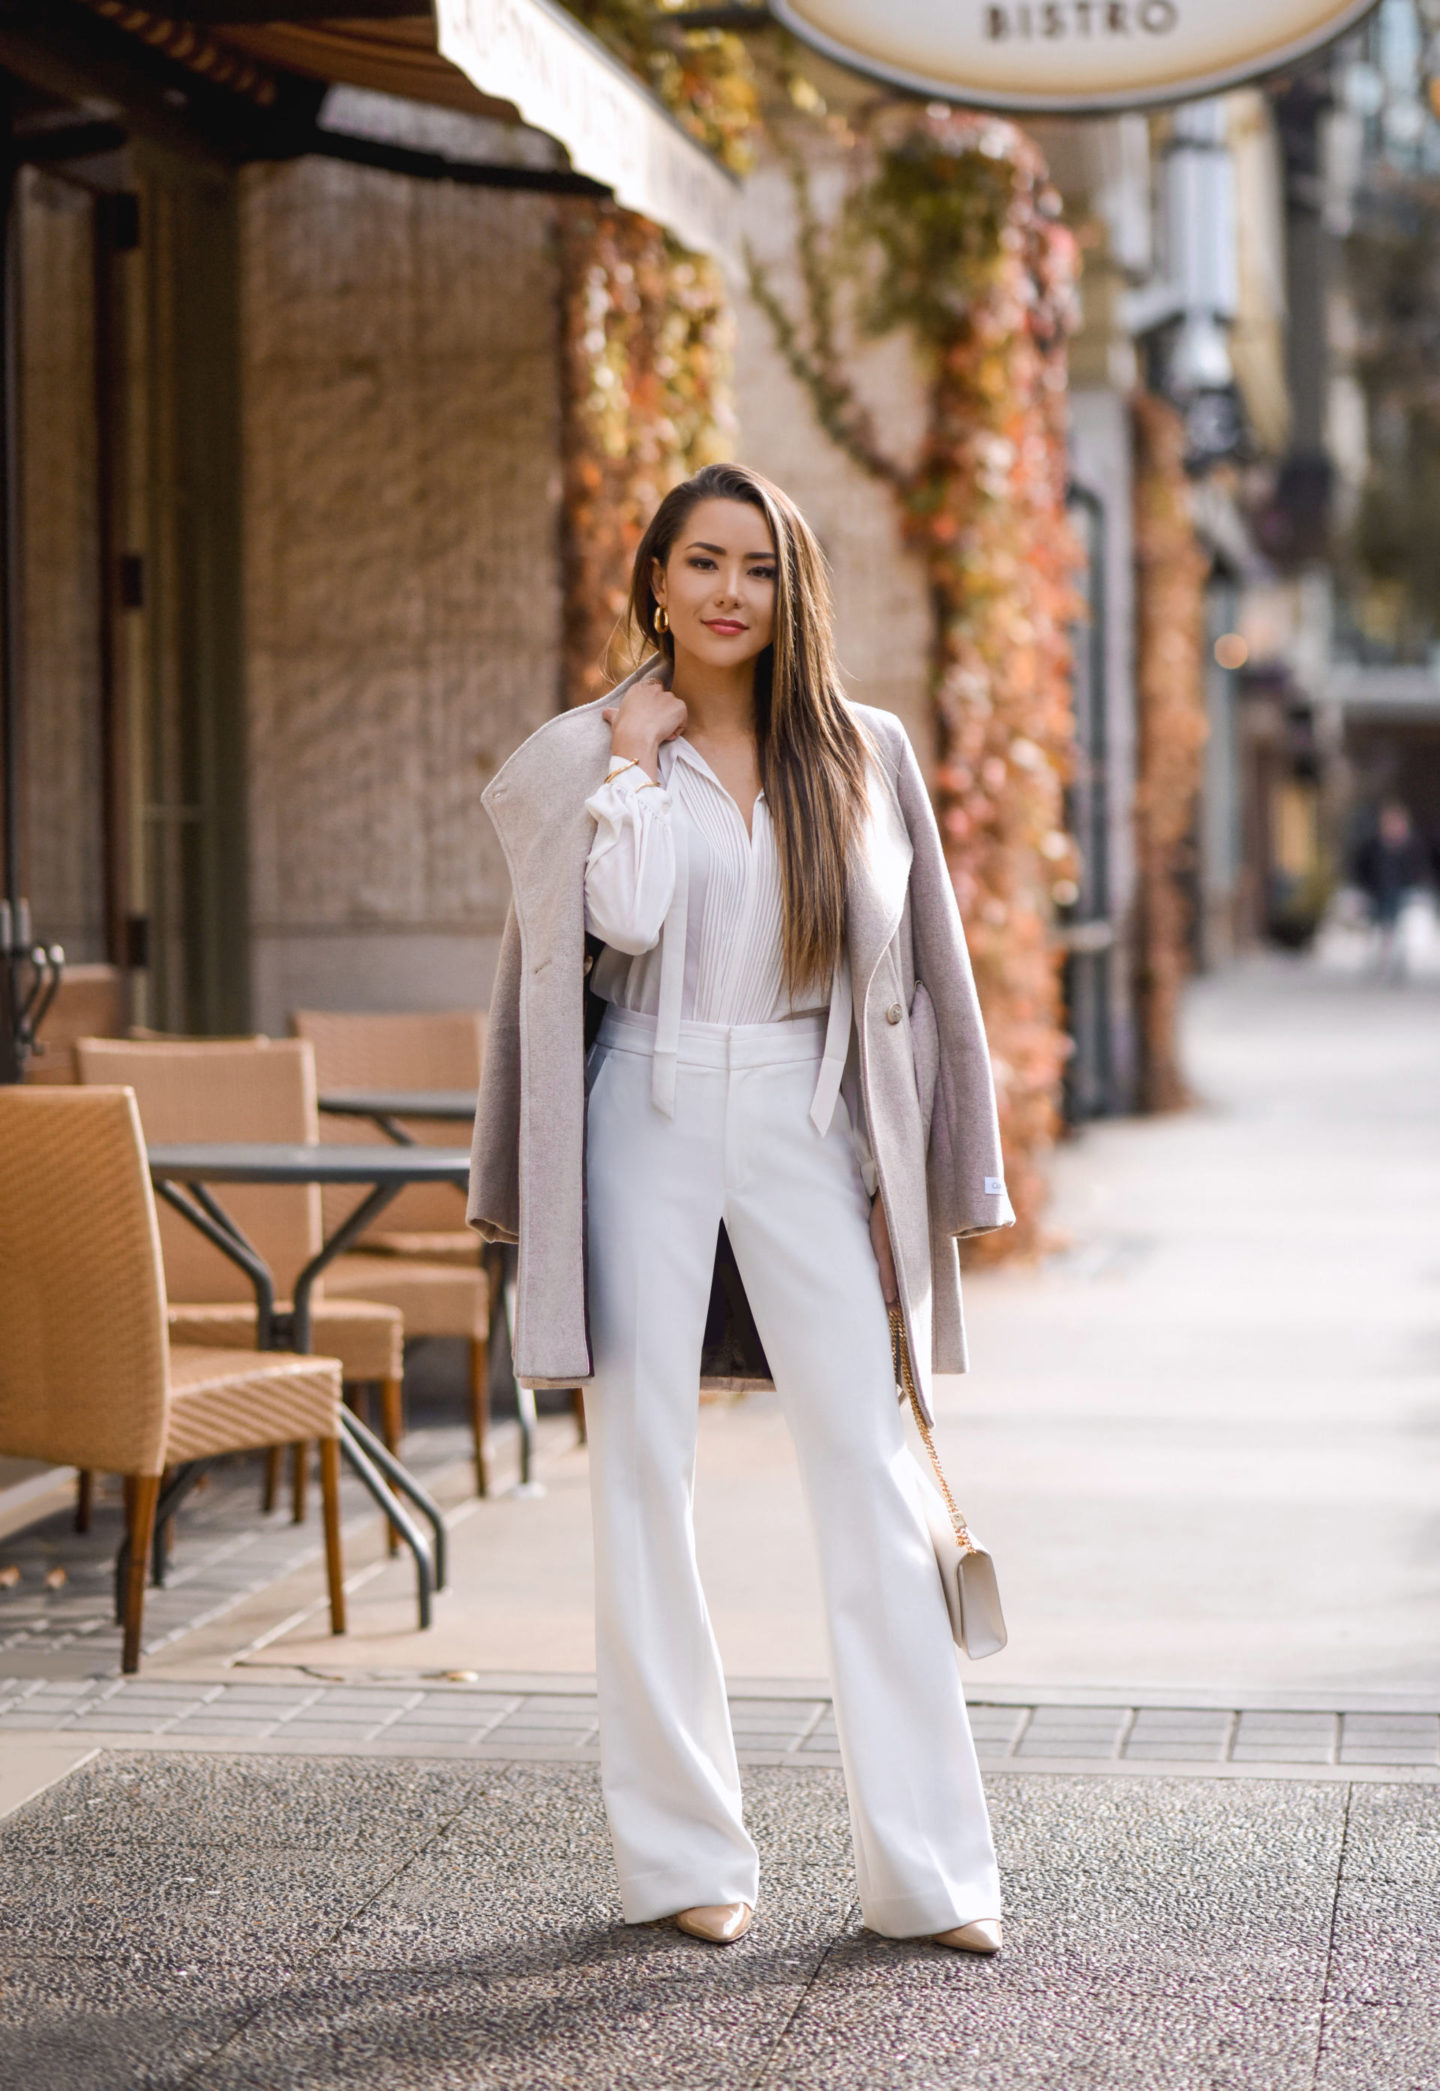 white pants, wide leg trousers, white trousers, banana republic, coat, office, dinner look, jimmy choo, nude heel, ysl